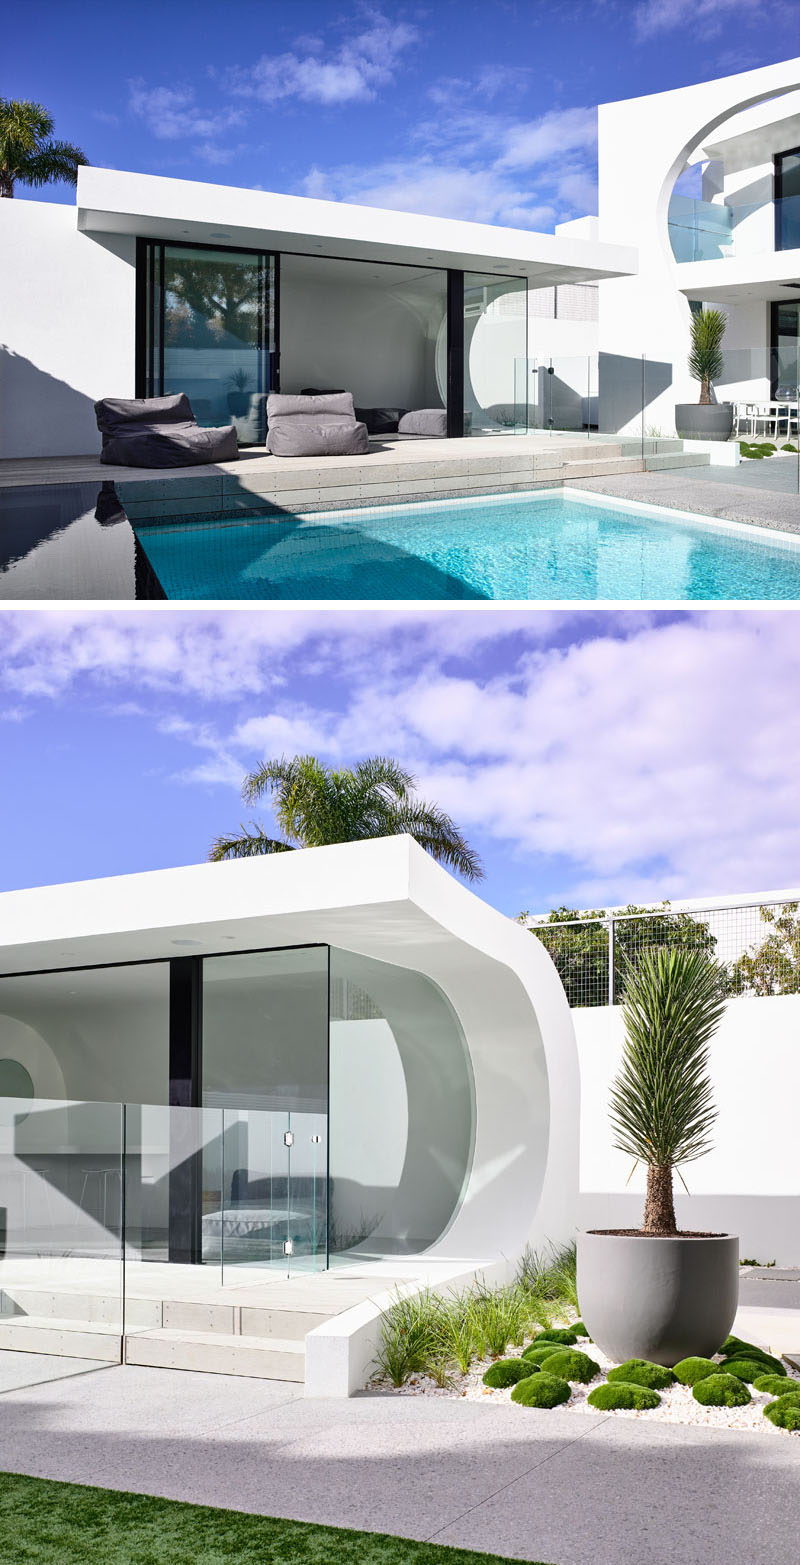 This modern backyard has aninfinity edge spa and pool, and a wave style pool house. Click through to see more photos of this modern house. #Pool #SwimmingPool #PoolHouse #Architecture #Cabana